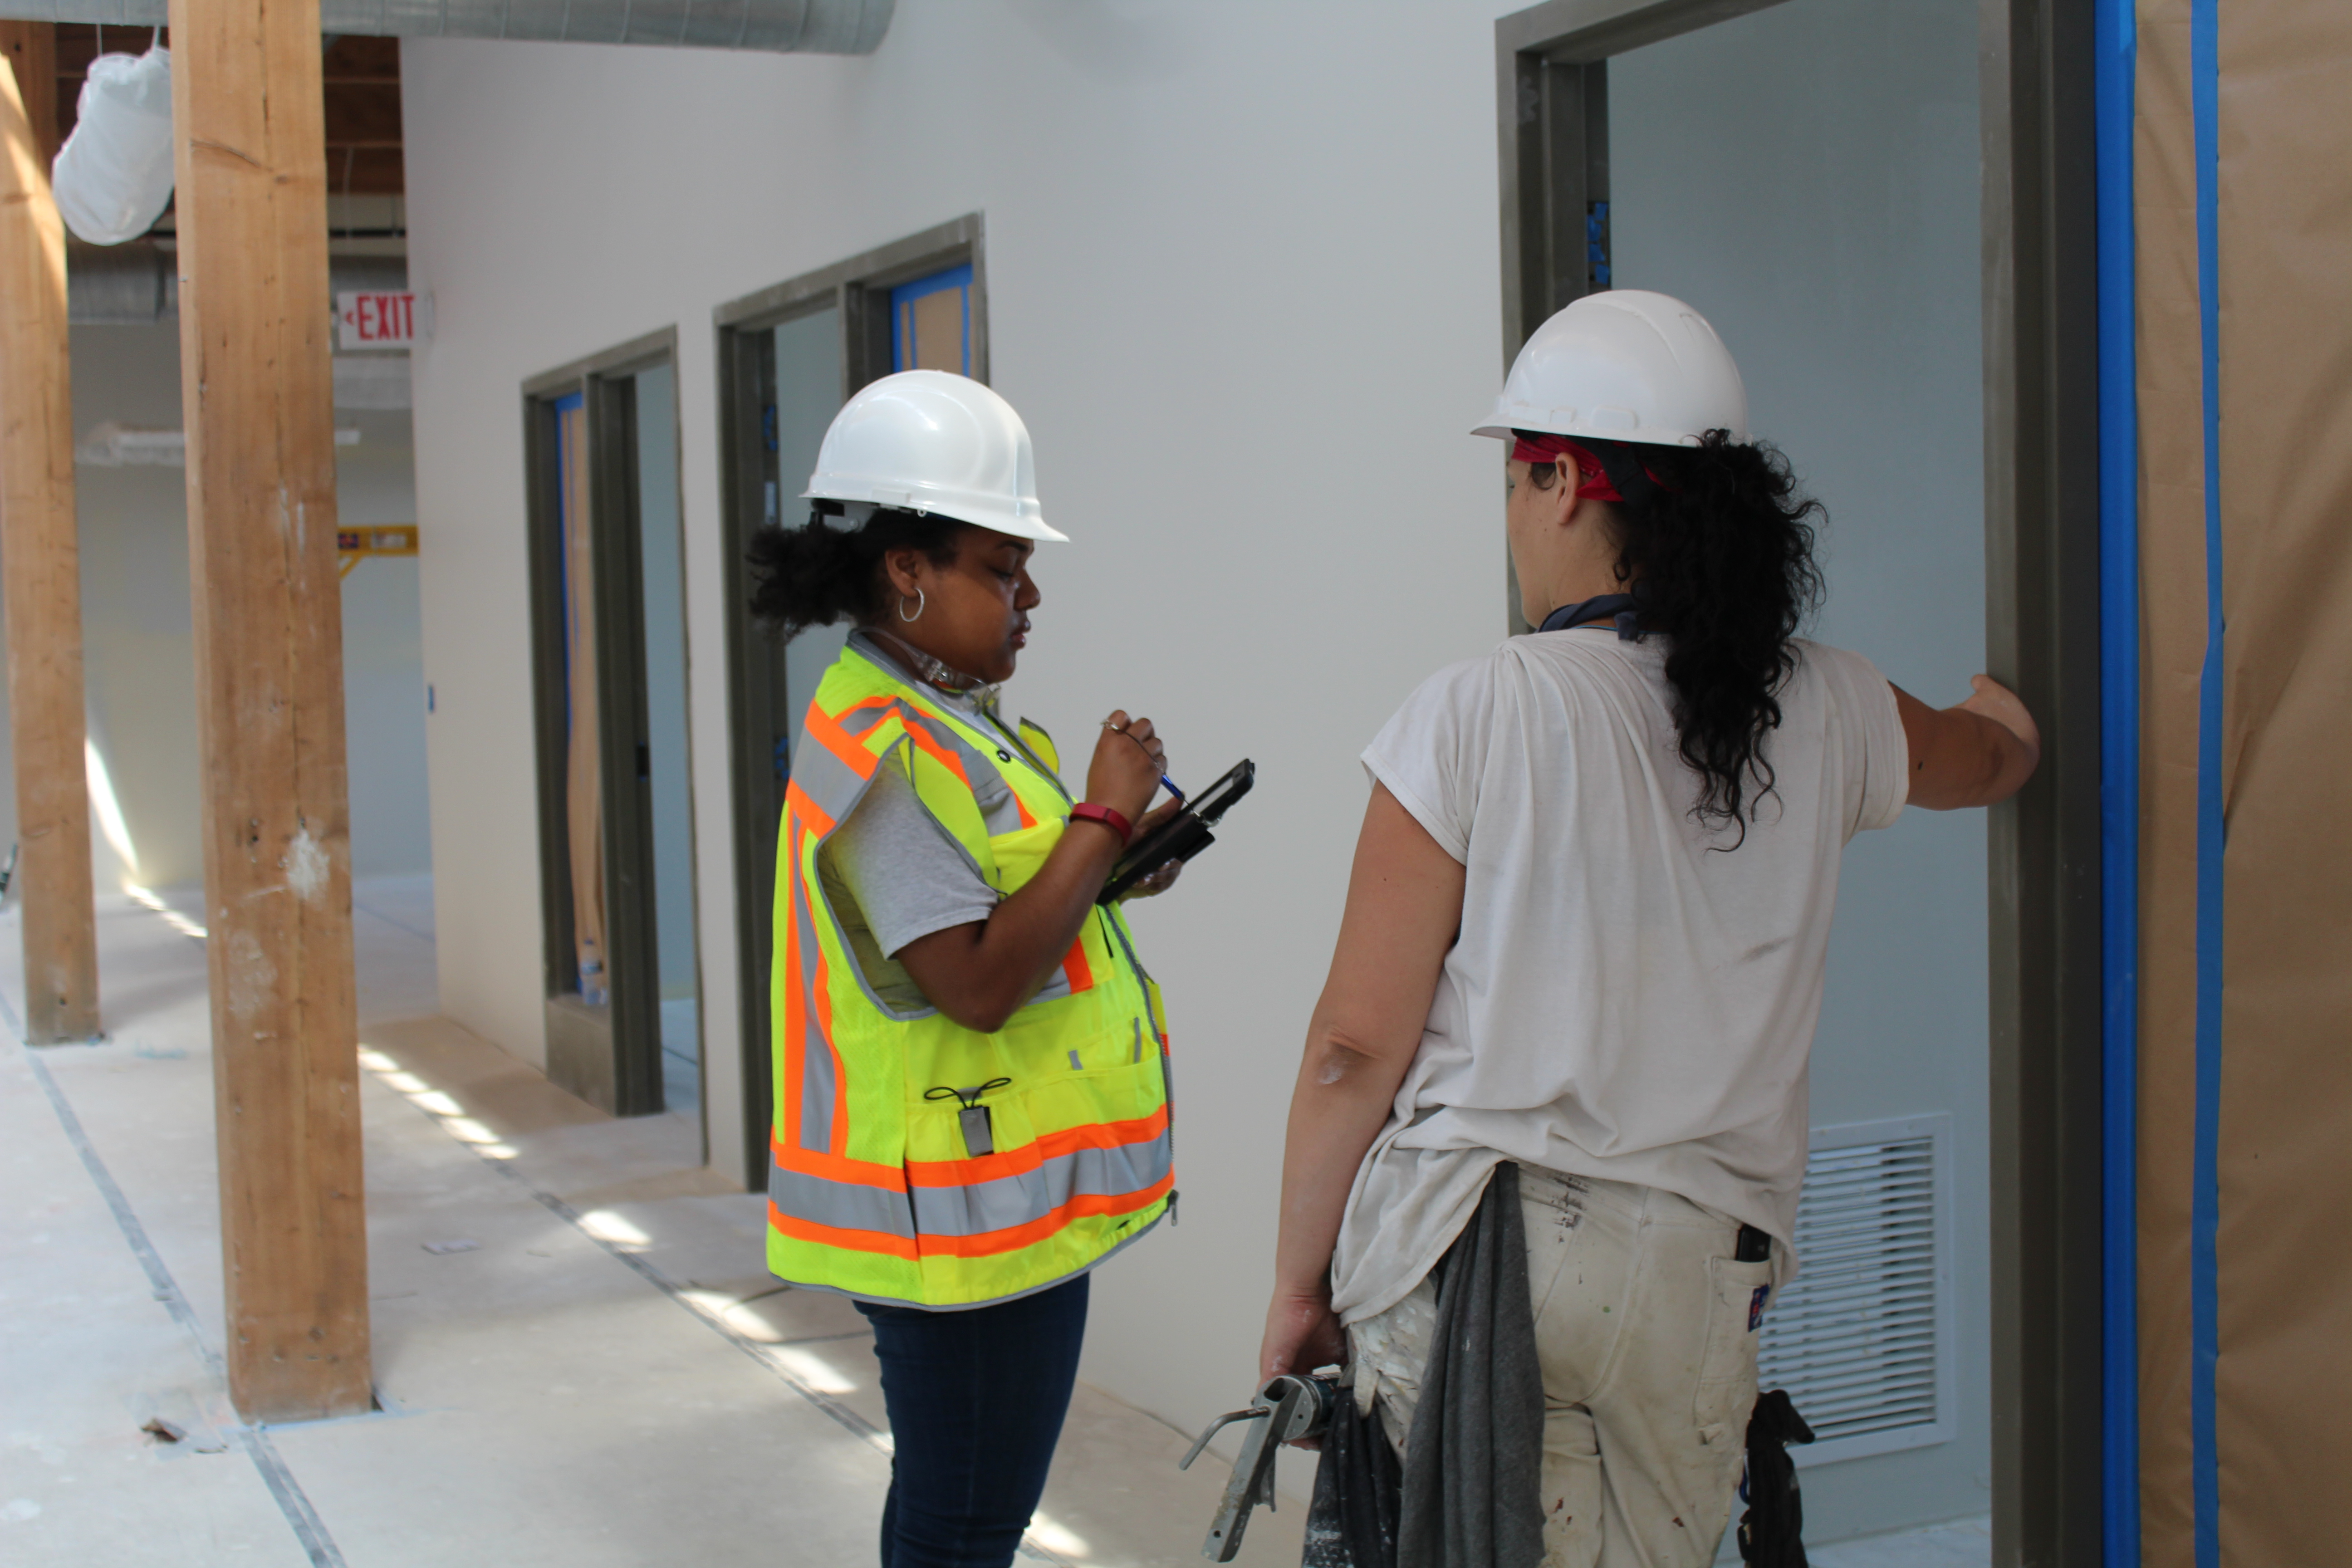 Prism staff engaging with worker.